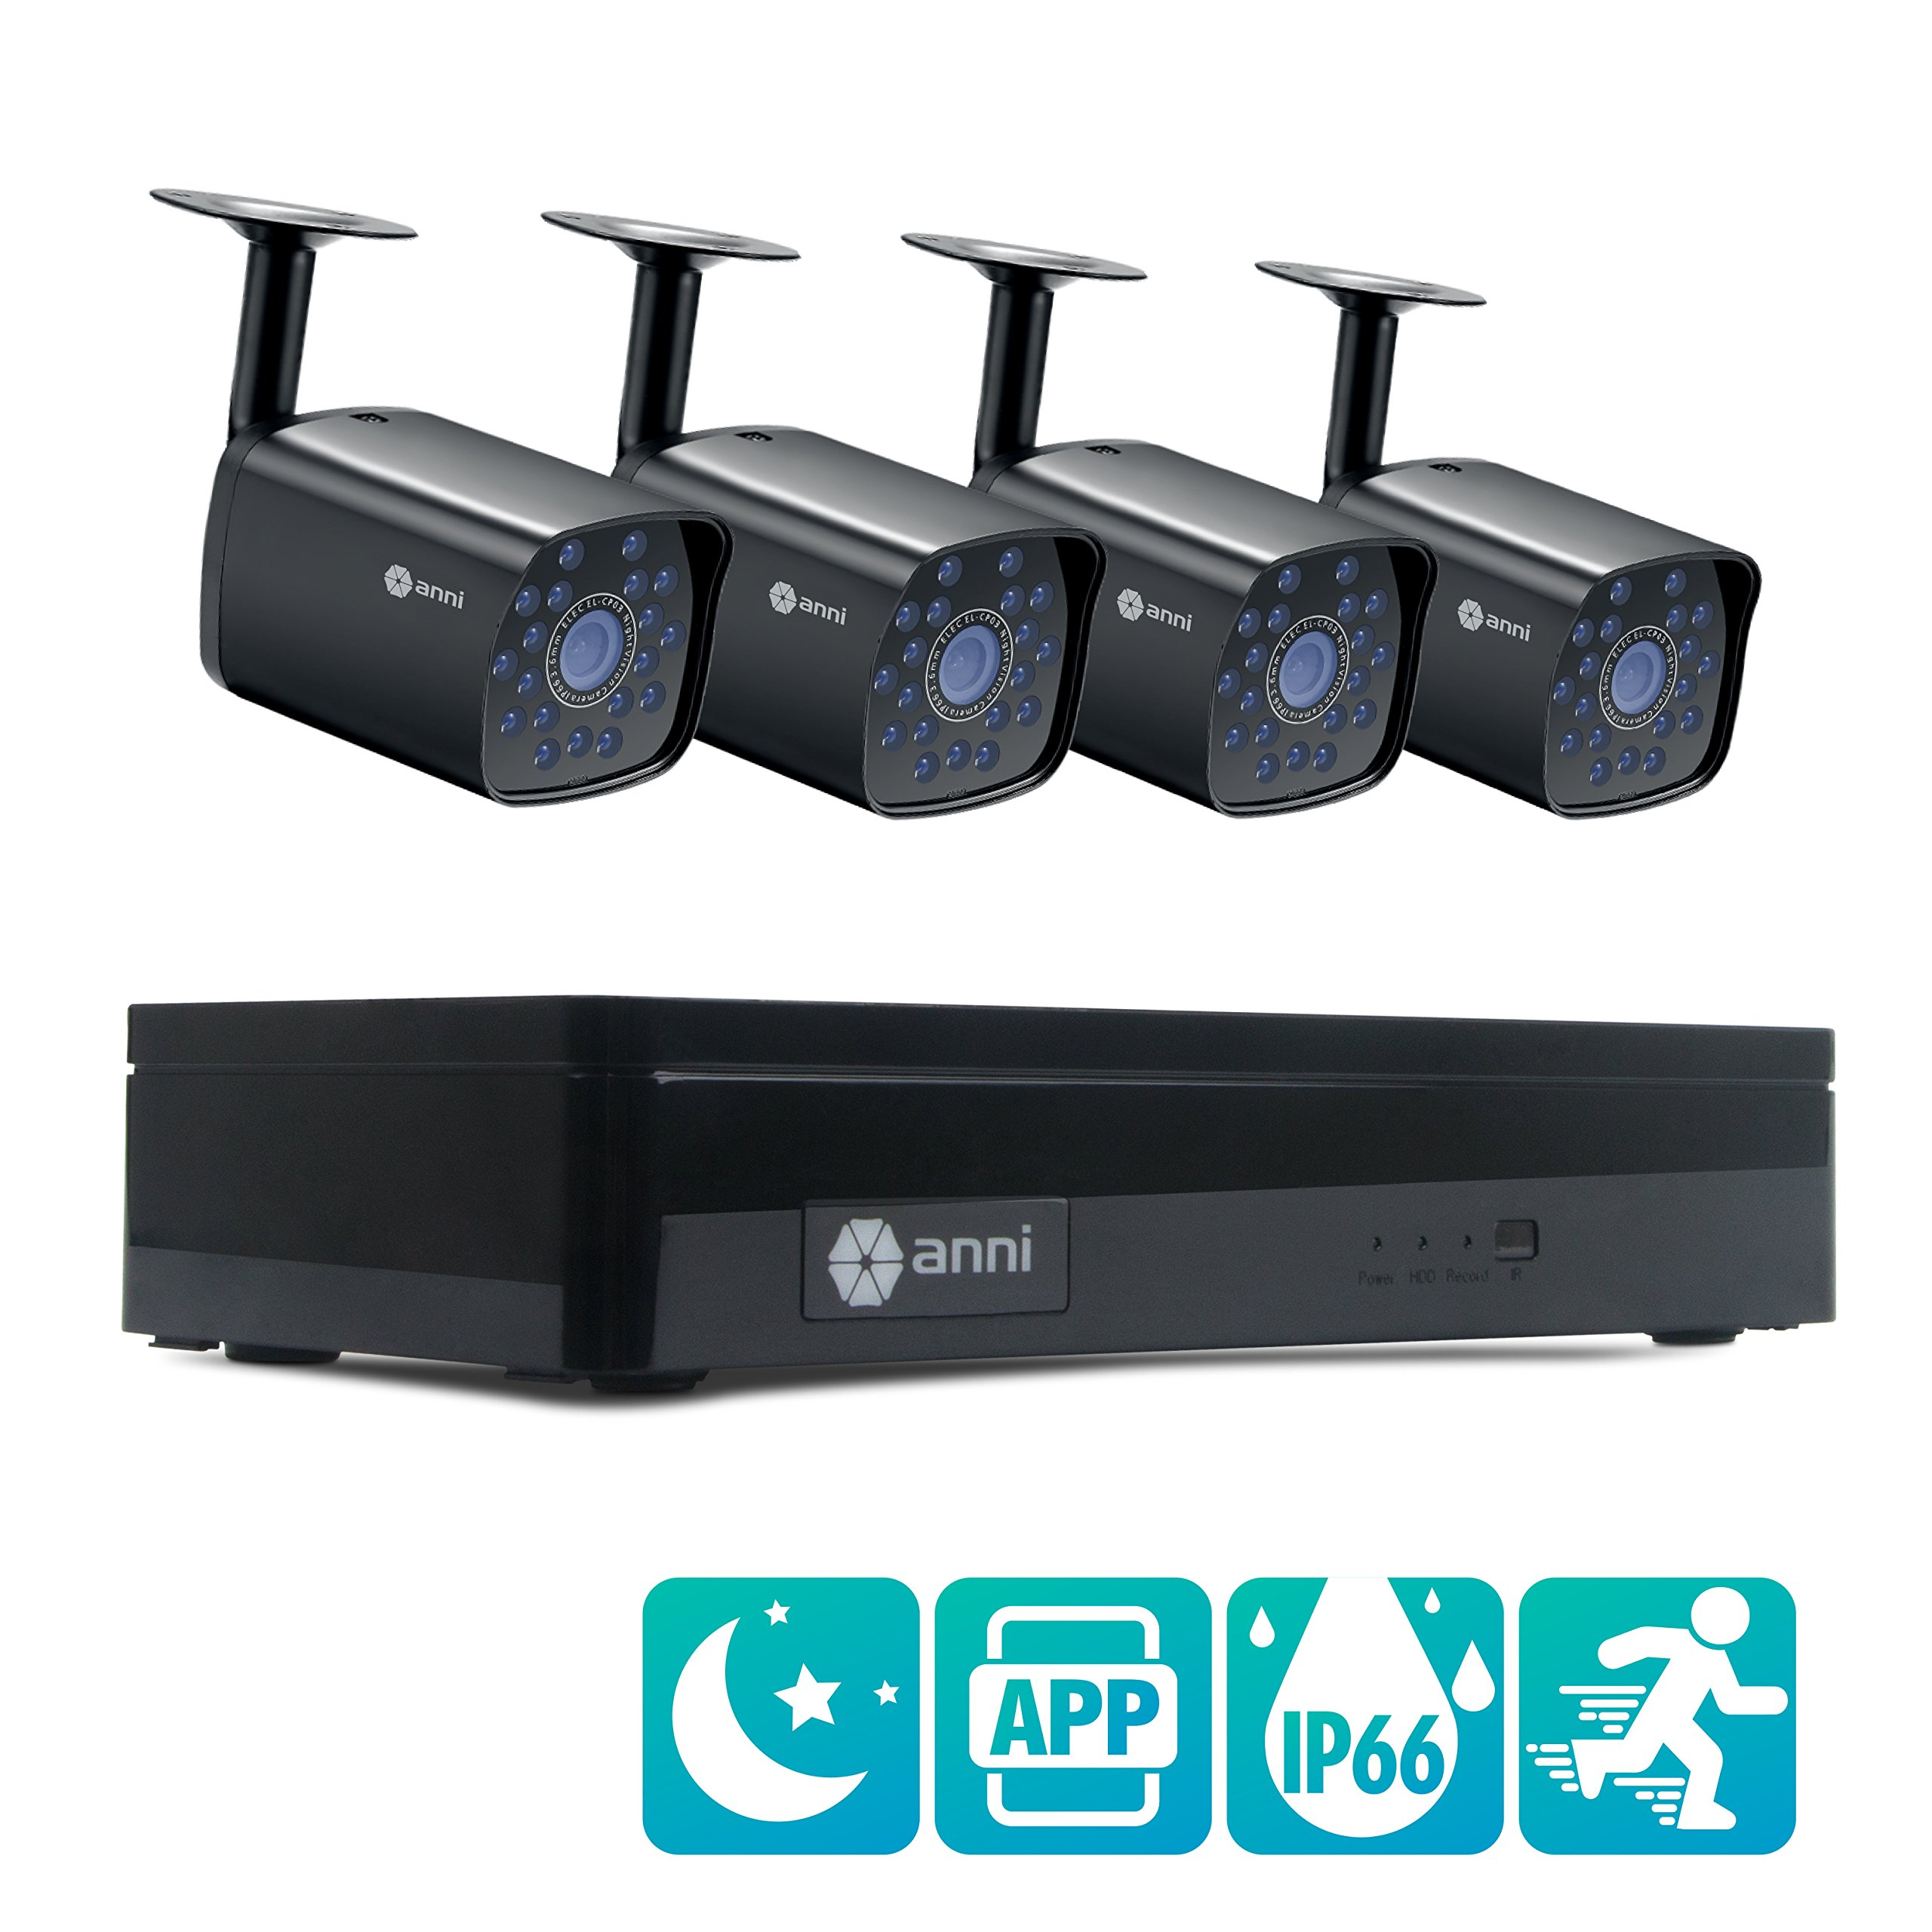 anni 4CH DVR 960H Video Security System 4PCS 1500TVL Weatherproof Outdoor Cameras Surveillance Kit, Free iOS Android APP, Motion Detection Email Alert, IR Night Vision 65ft -No Hard Drive